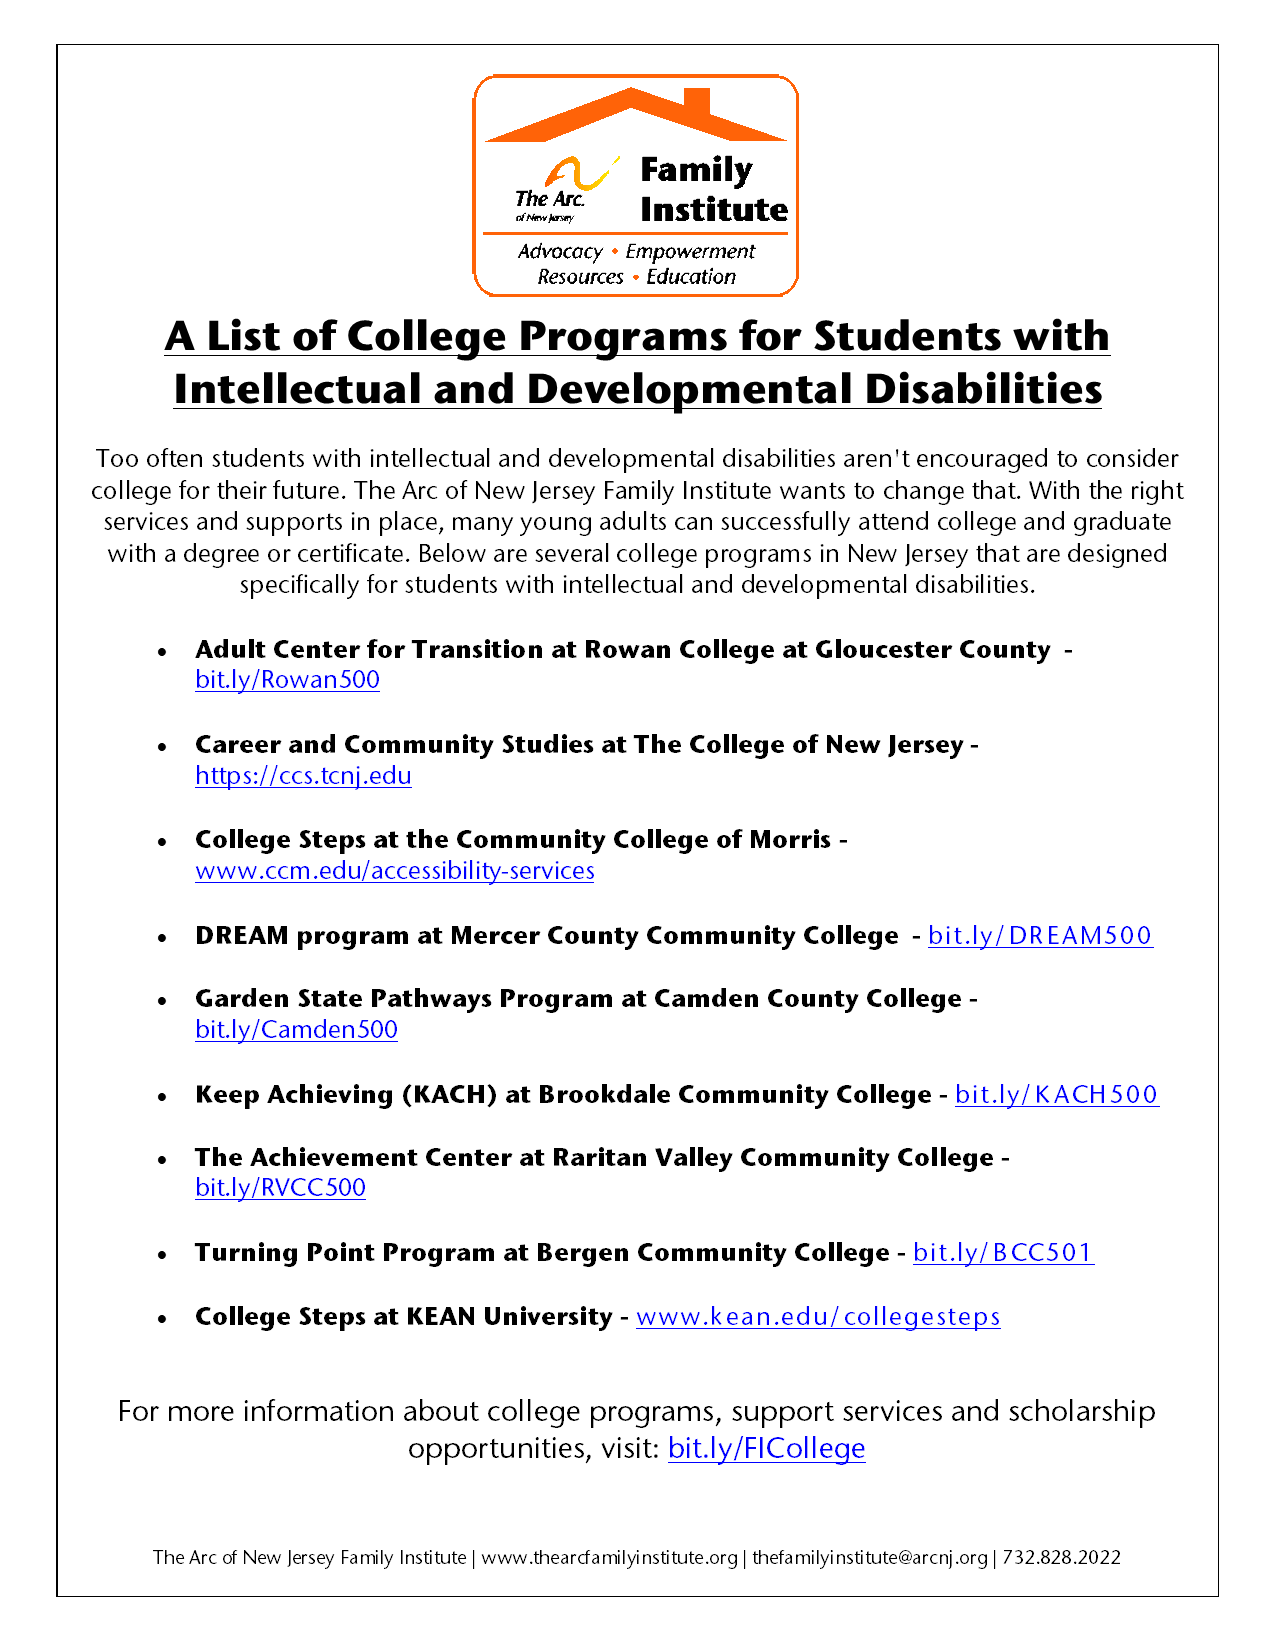 A List of College Programs for Students with  Intellectual and Developmental Disabilities